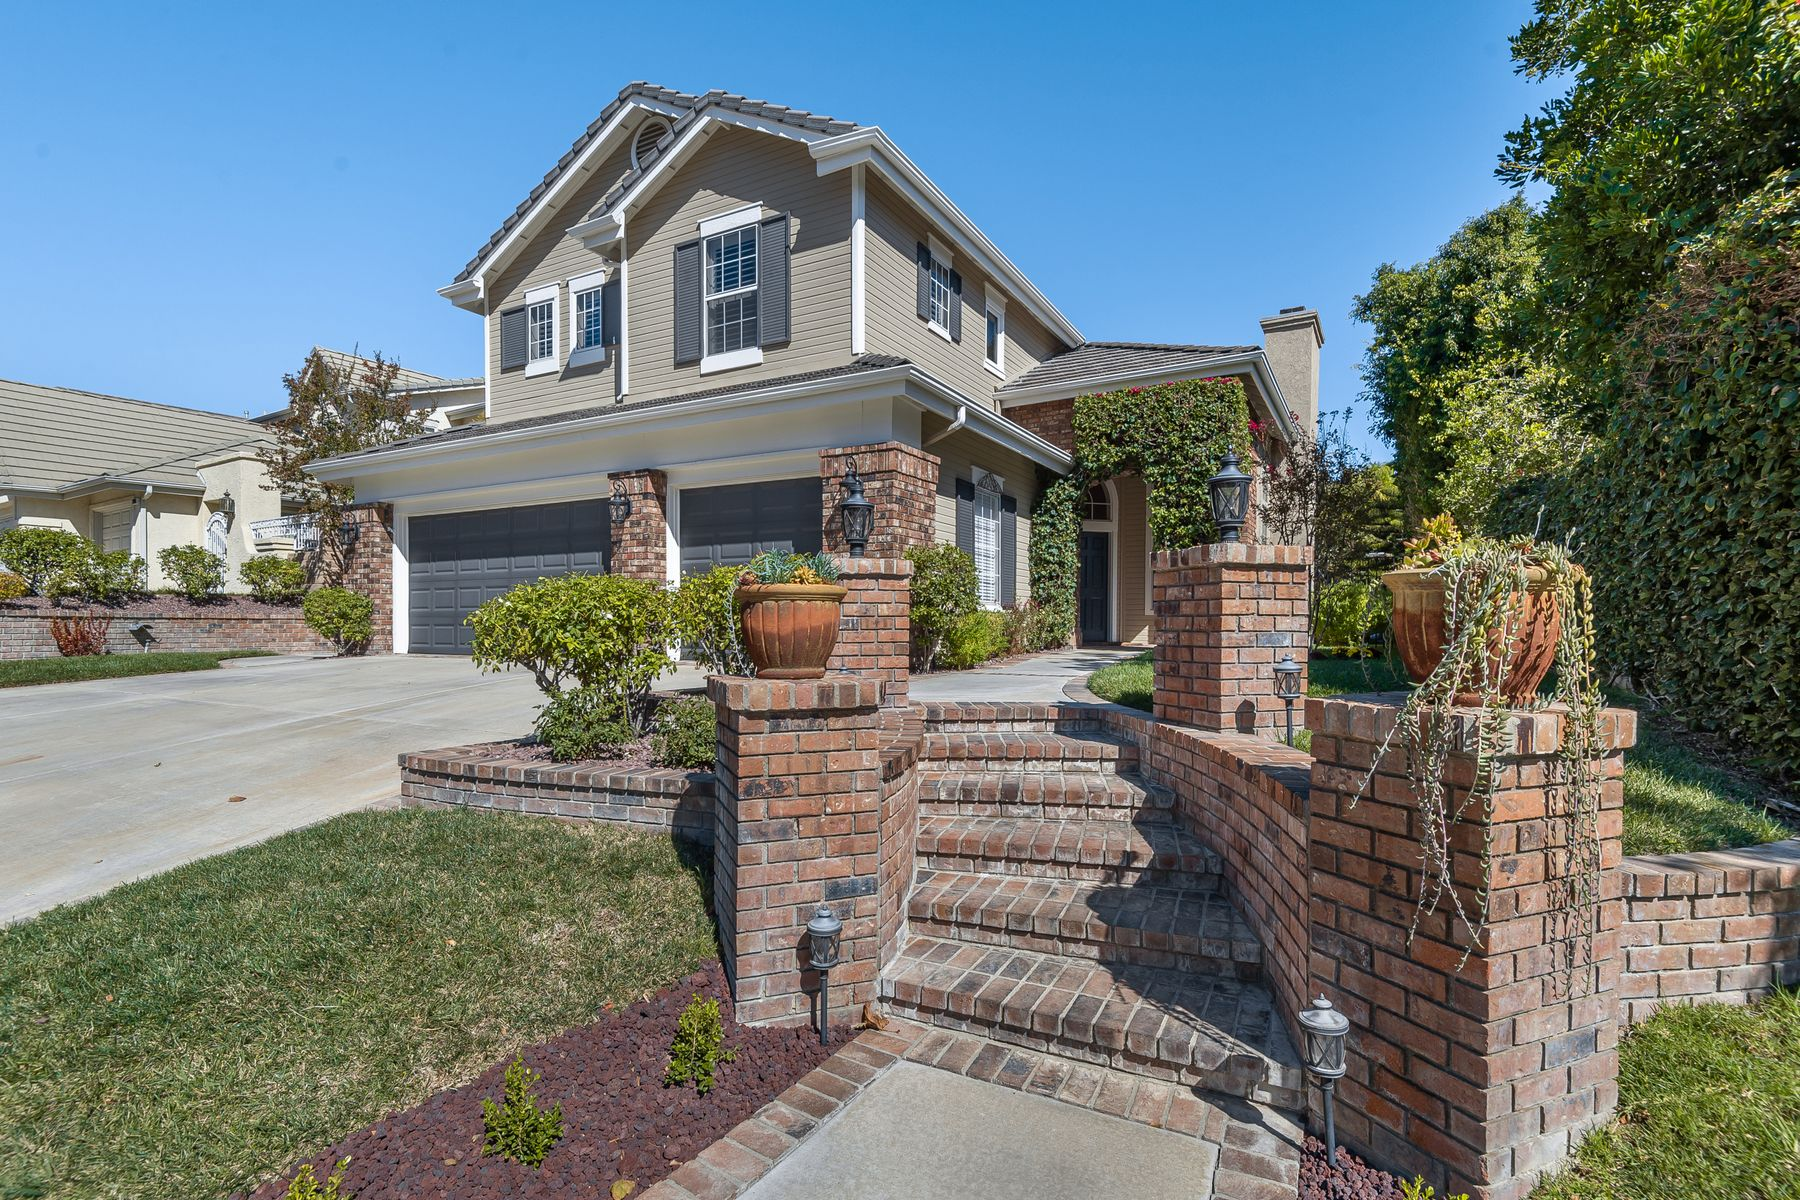 Single Family Homes for Sale at 2890 Irongate Place Thousand Oaks, California 91362 United States